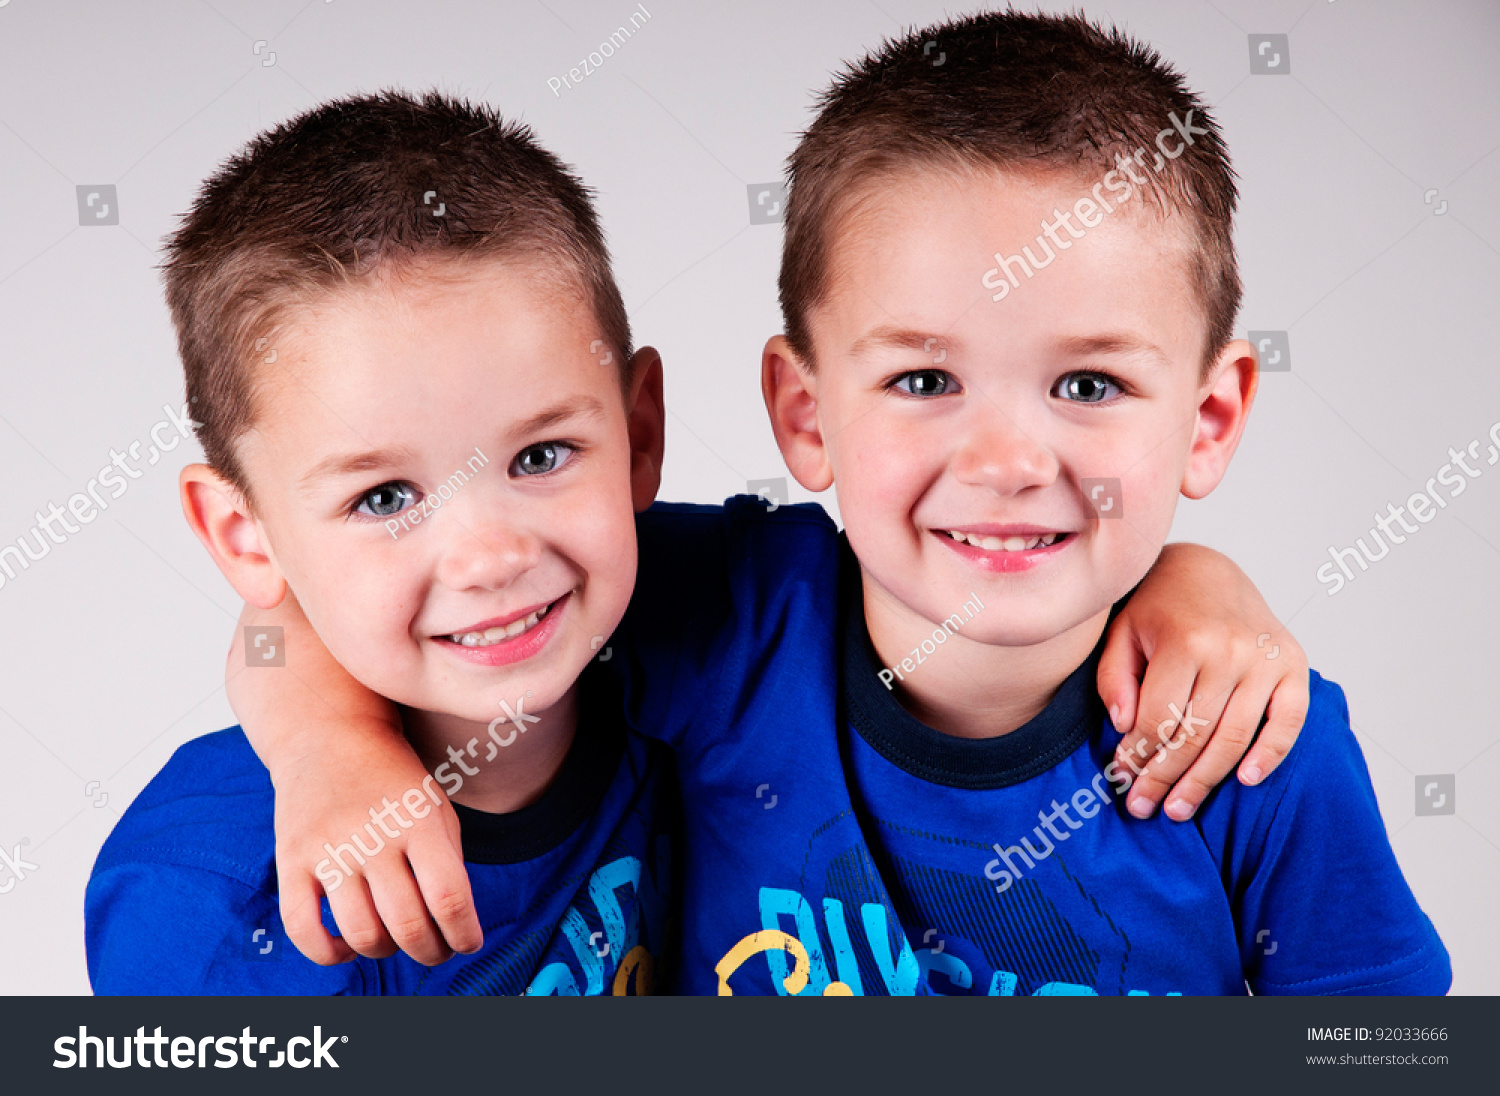 Adorable Twin Brothers Stock Photo 92033666 - Shutterstock